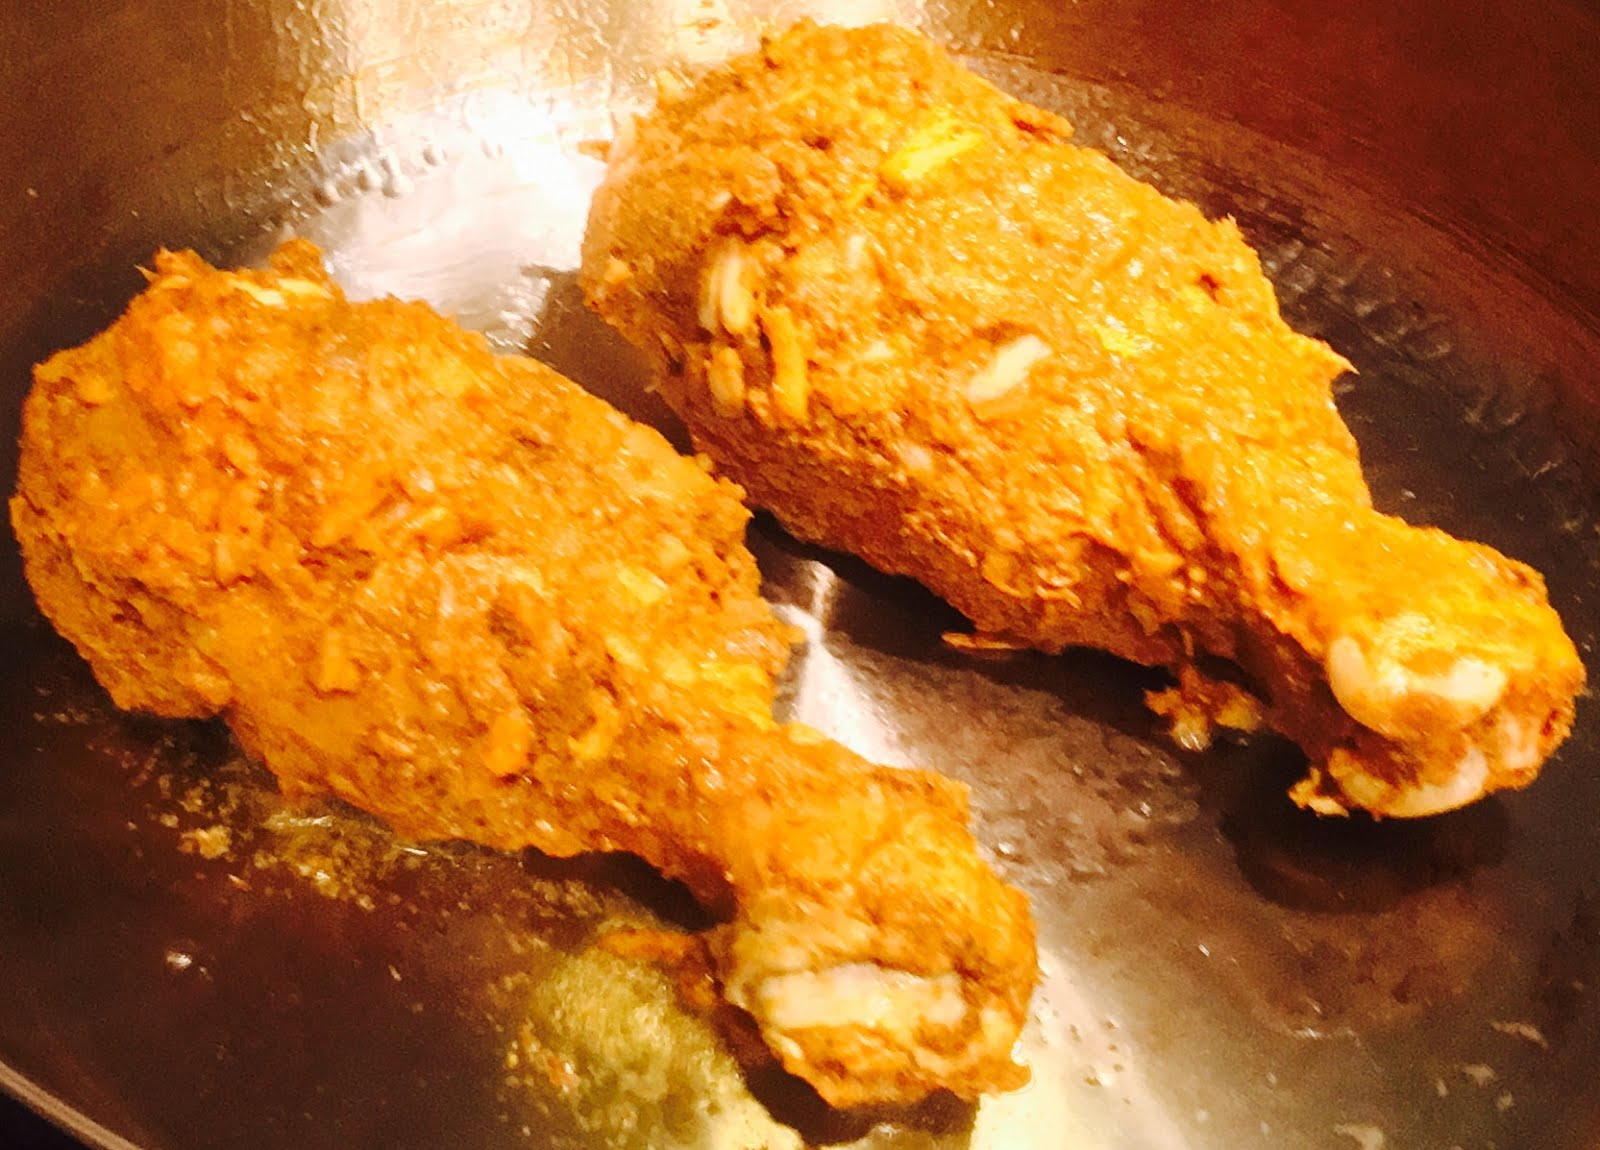 How long does it take to fry the chicken legs